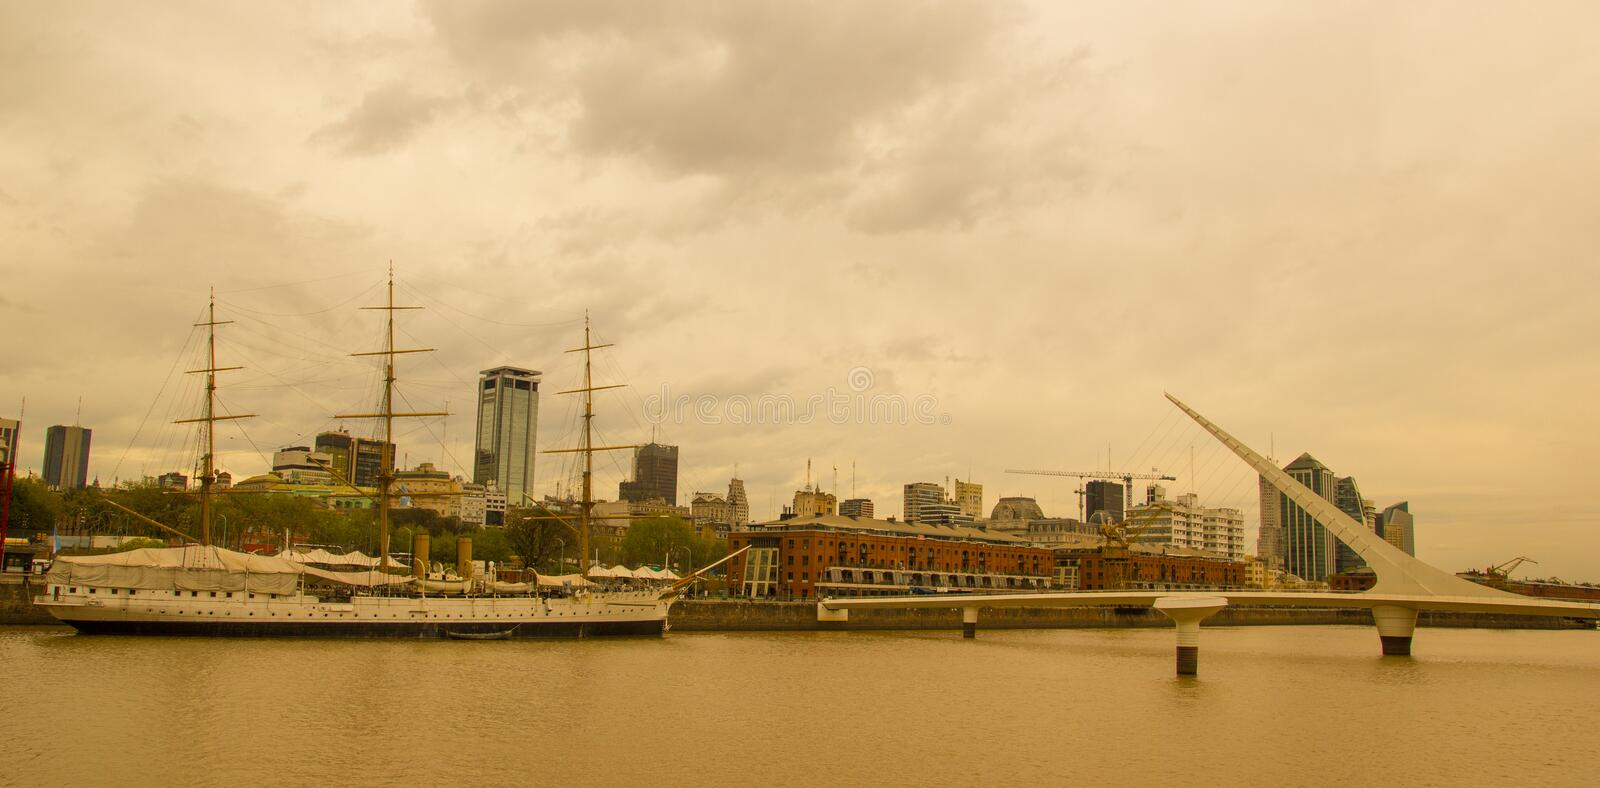 View of Puerto Madero, with the frigate Sarmiento and the Puente de la mujer. Puerto Madero, the old port of the city, now stock photography